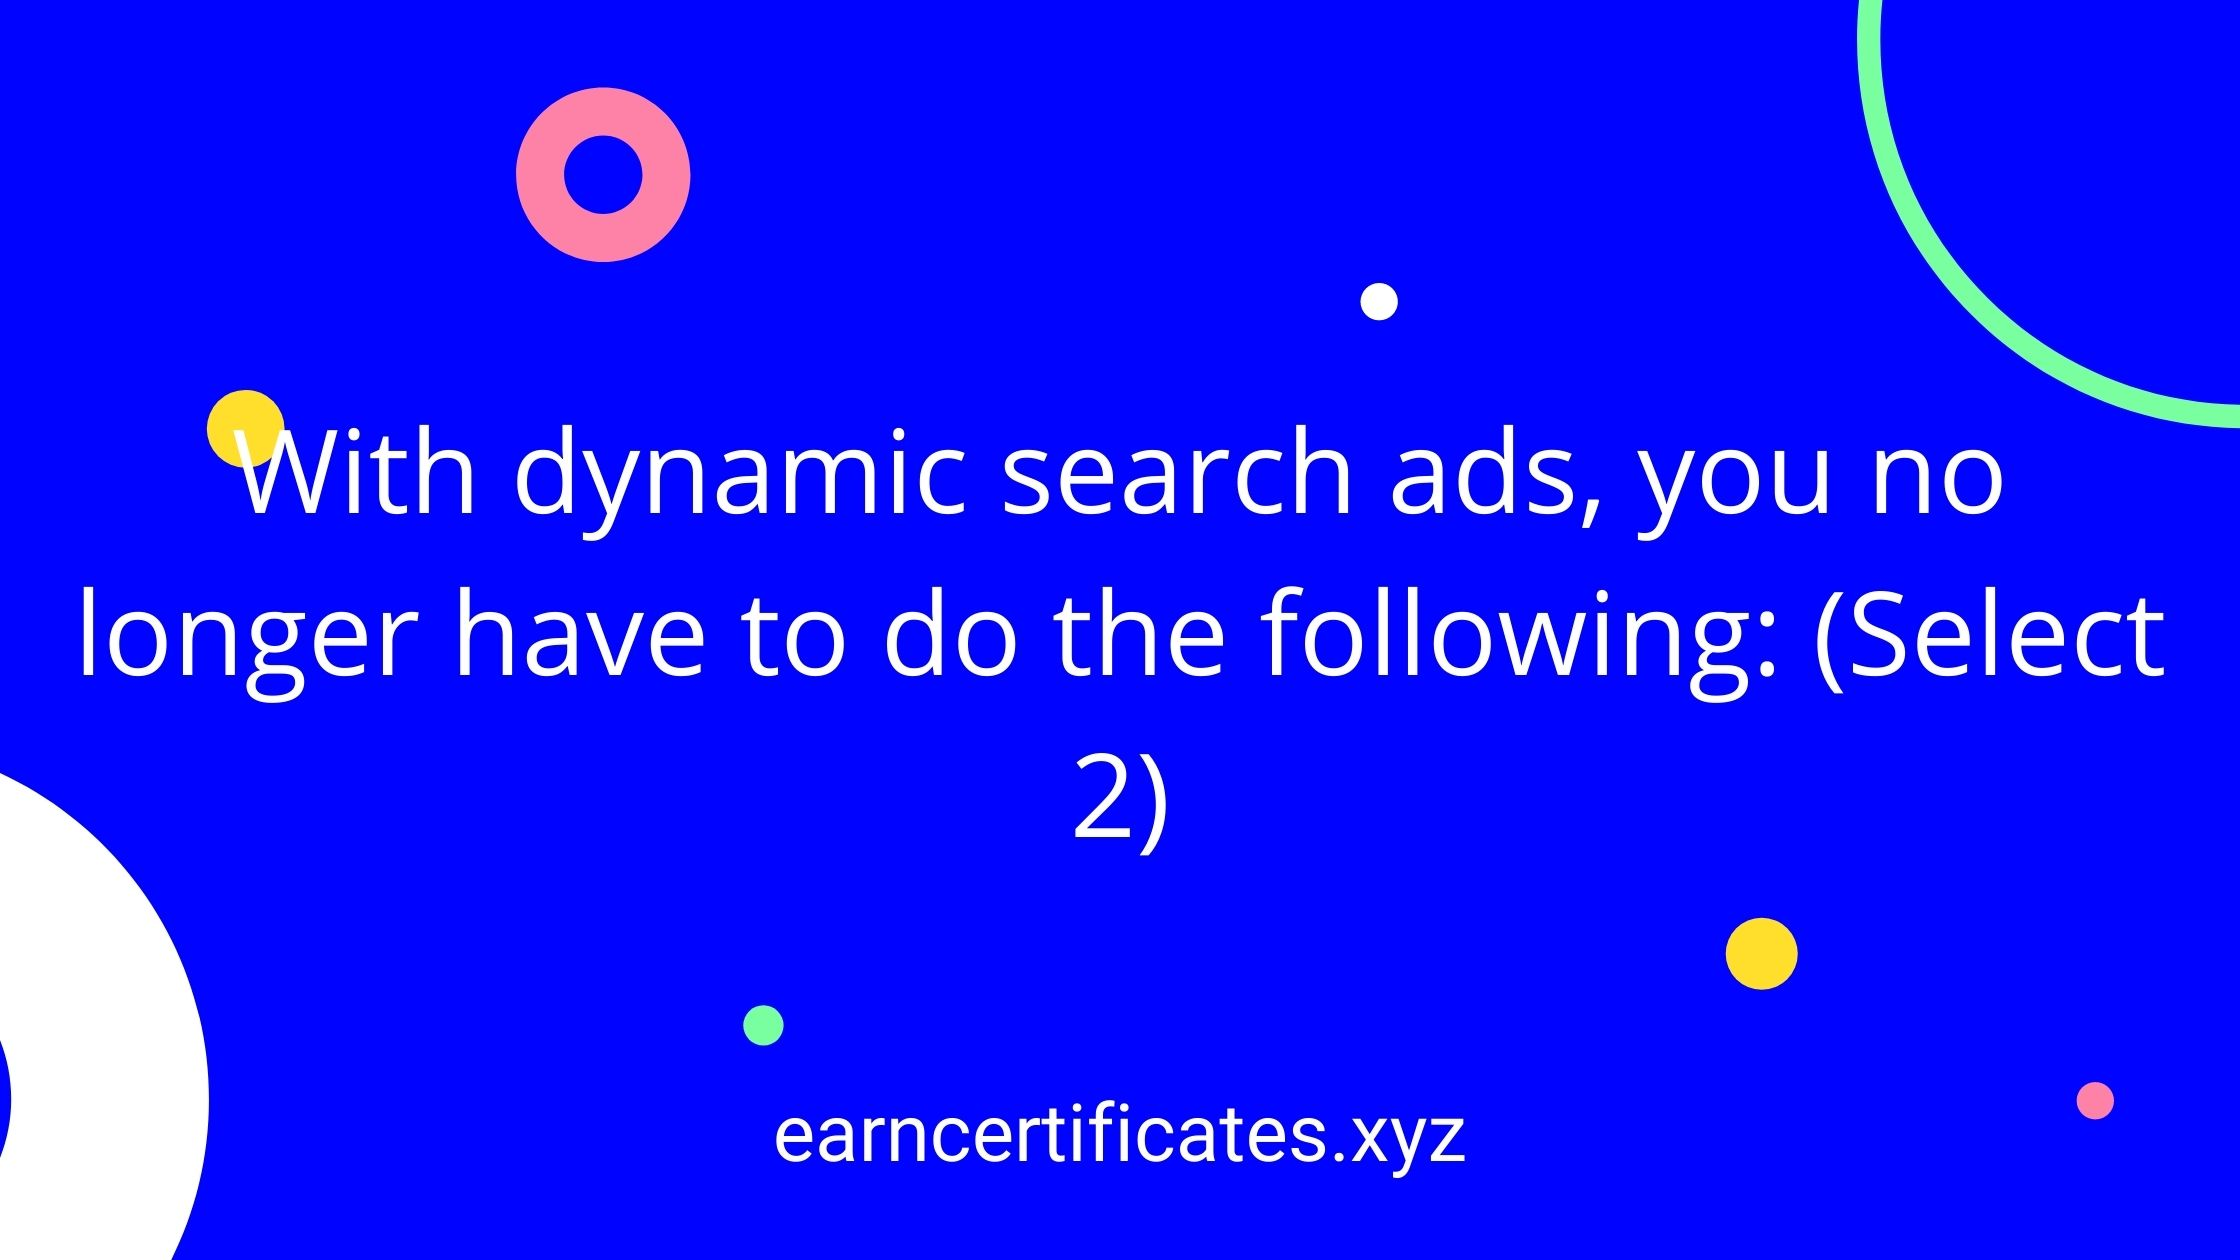 With dynamic search ads, you no longer have to do the following: (Select 2)